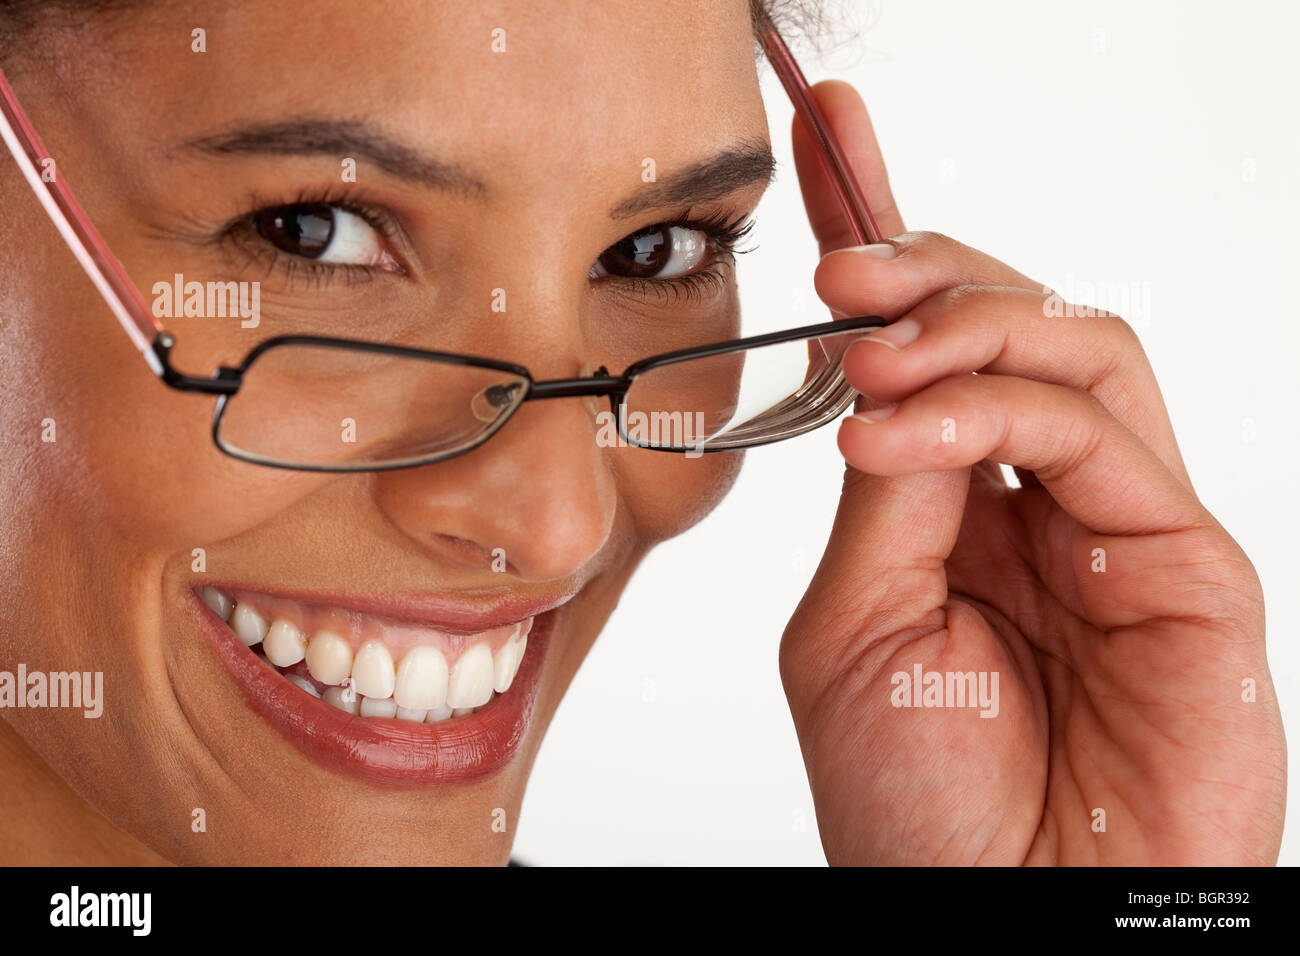 Closeup of young woman wearing glasses. Horizontally framed shot. - Stock Image